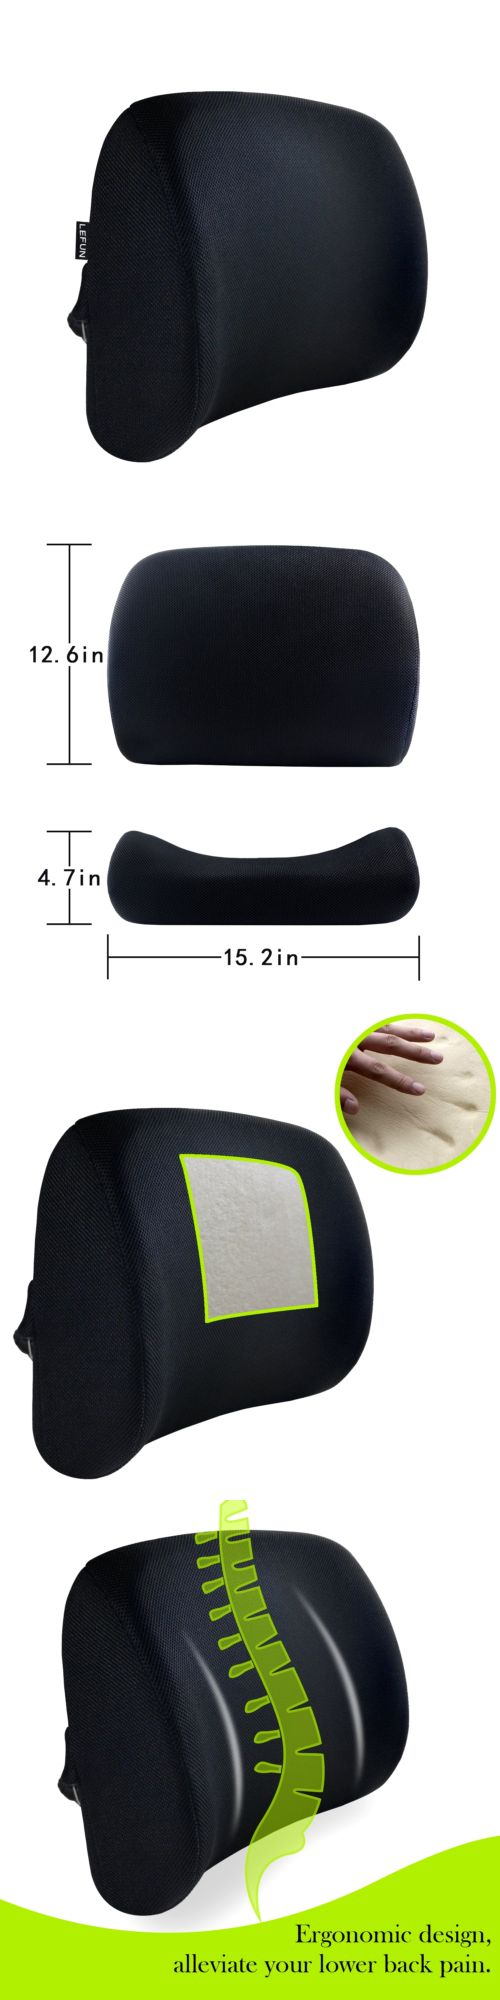 Seat and posture cushions lumbar cushion lower back support chair seat foam pillow